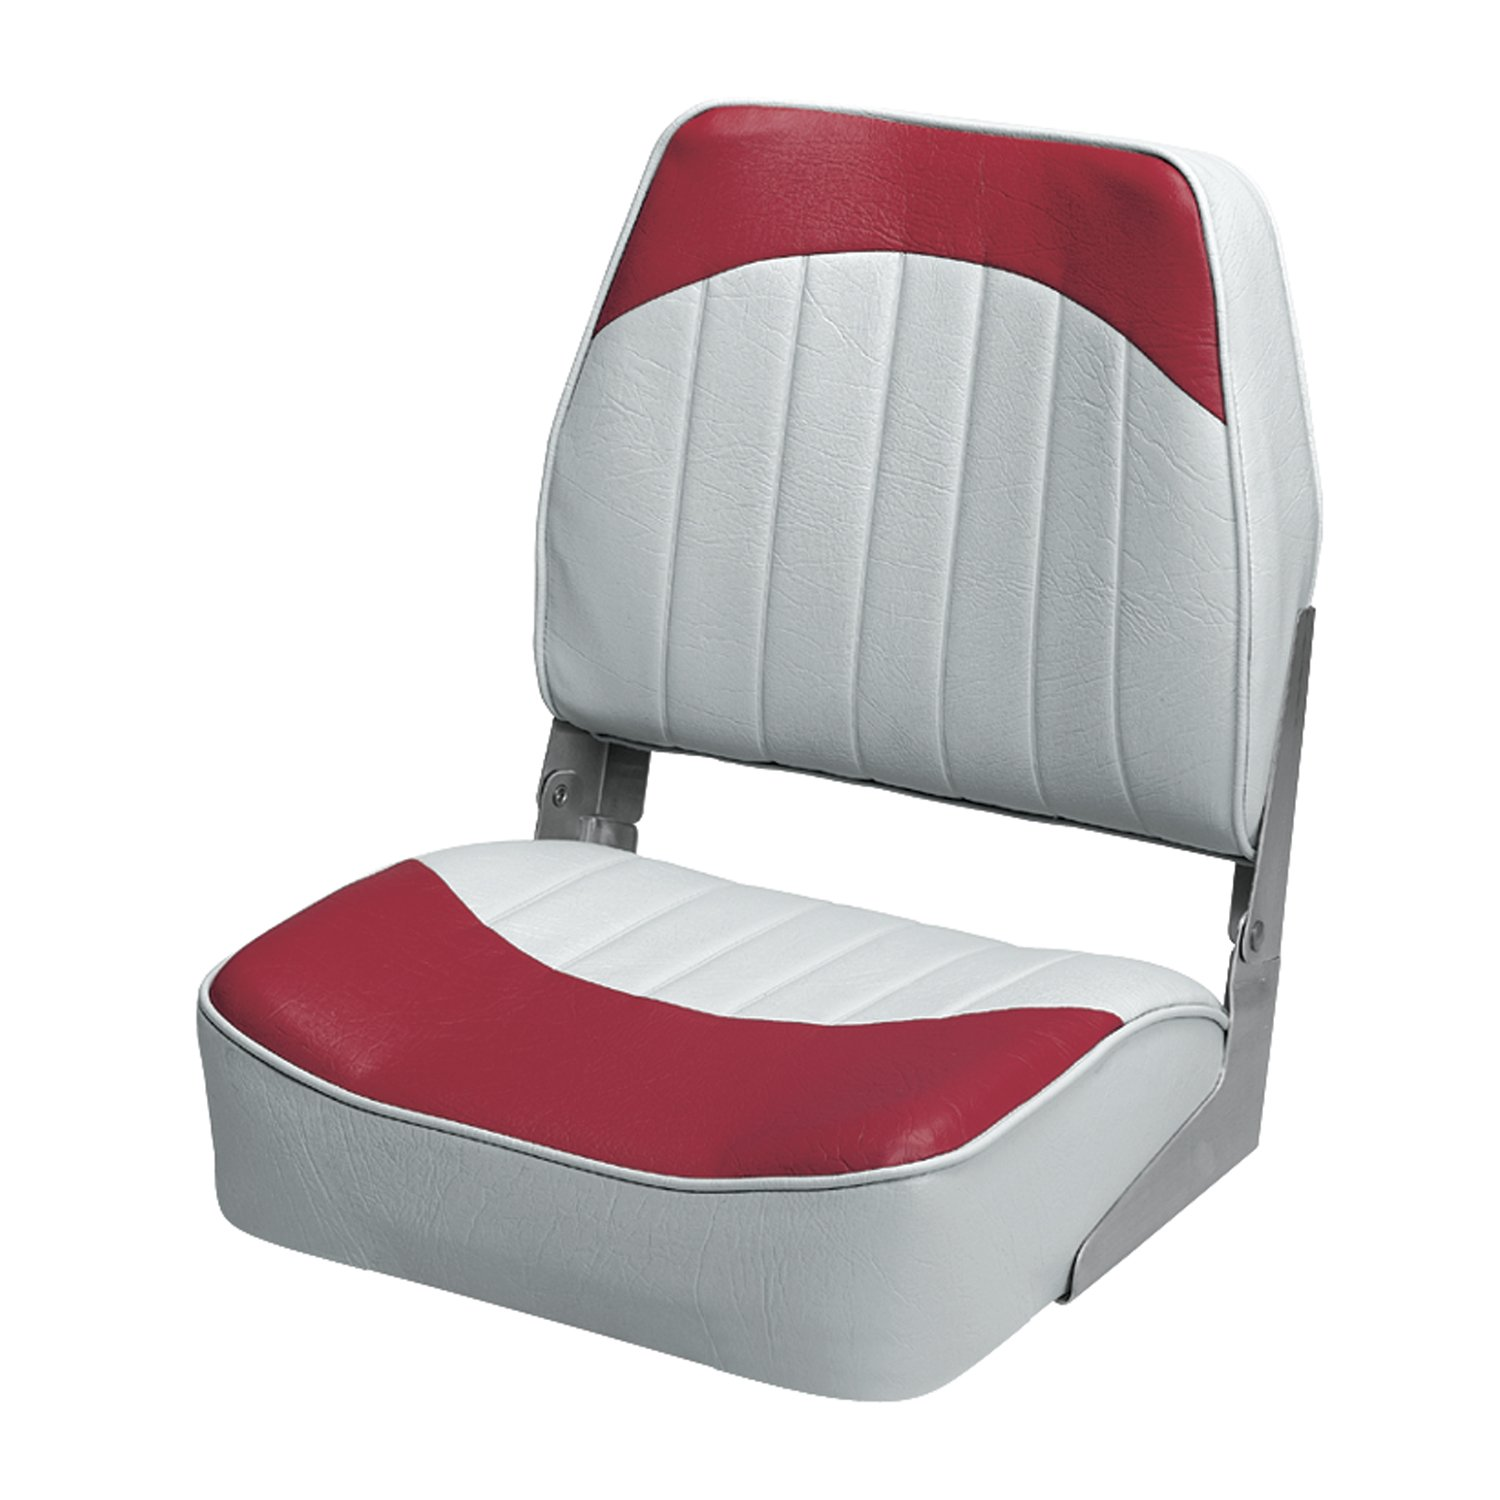 Wise 8WD734PLS-661 Low Back Boat Seat, Grey/Red